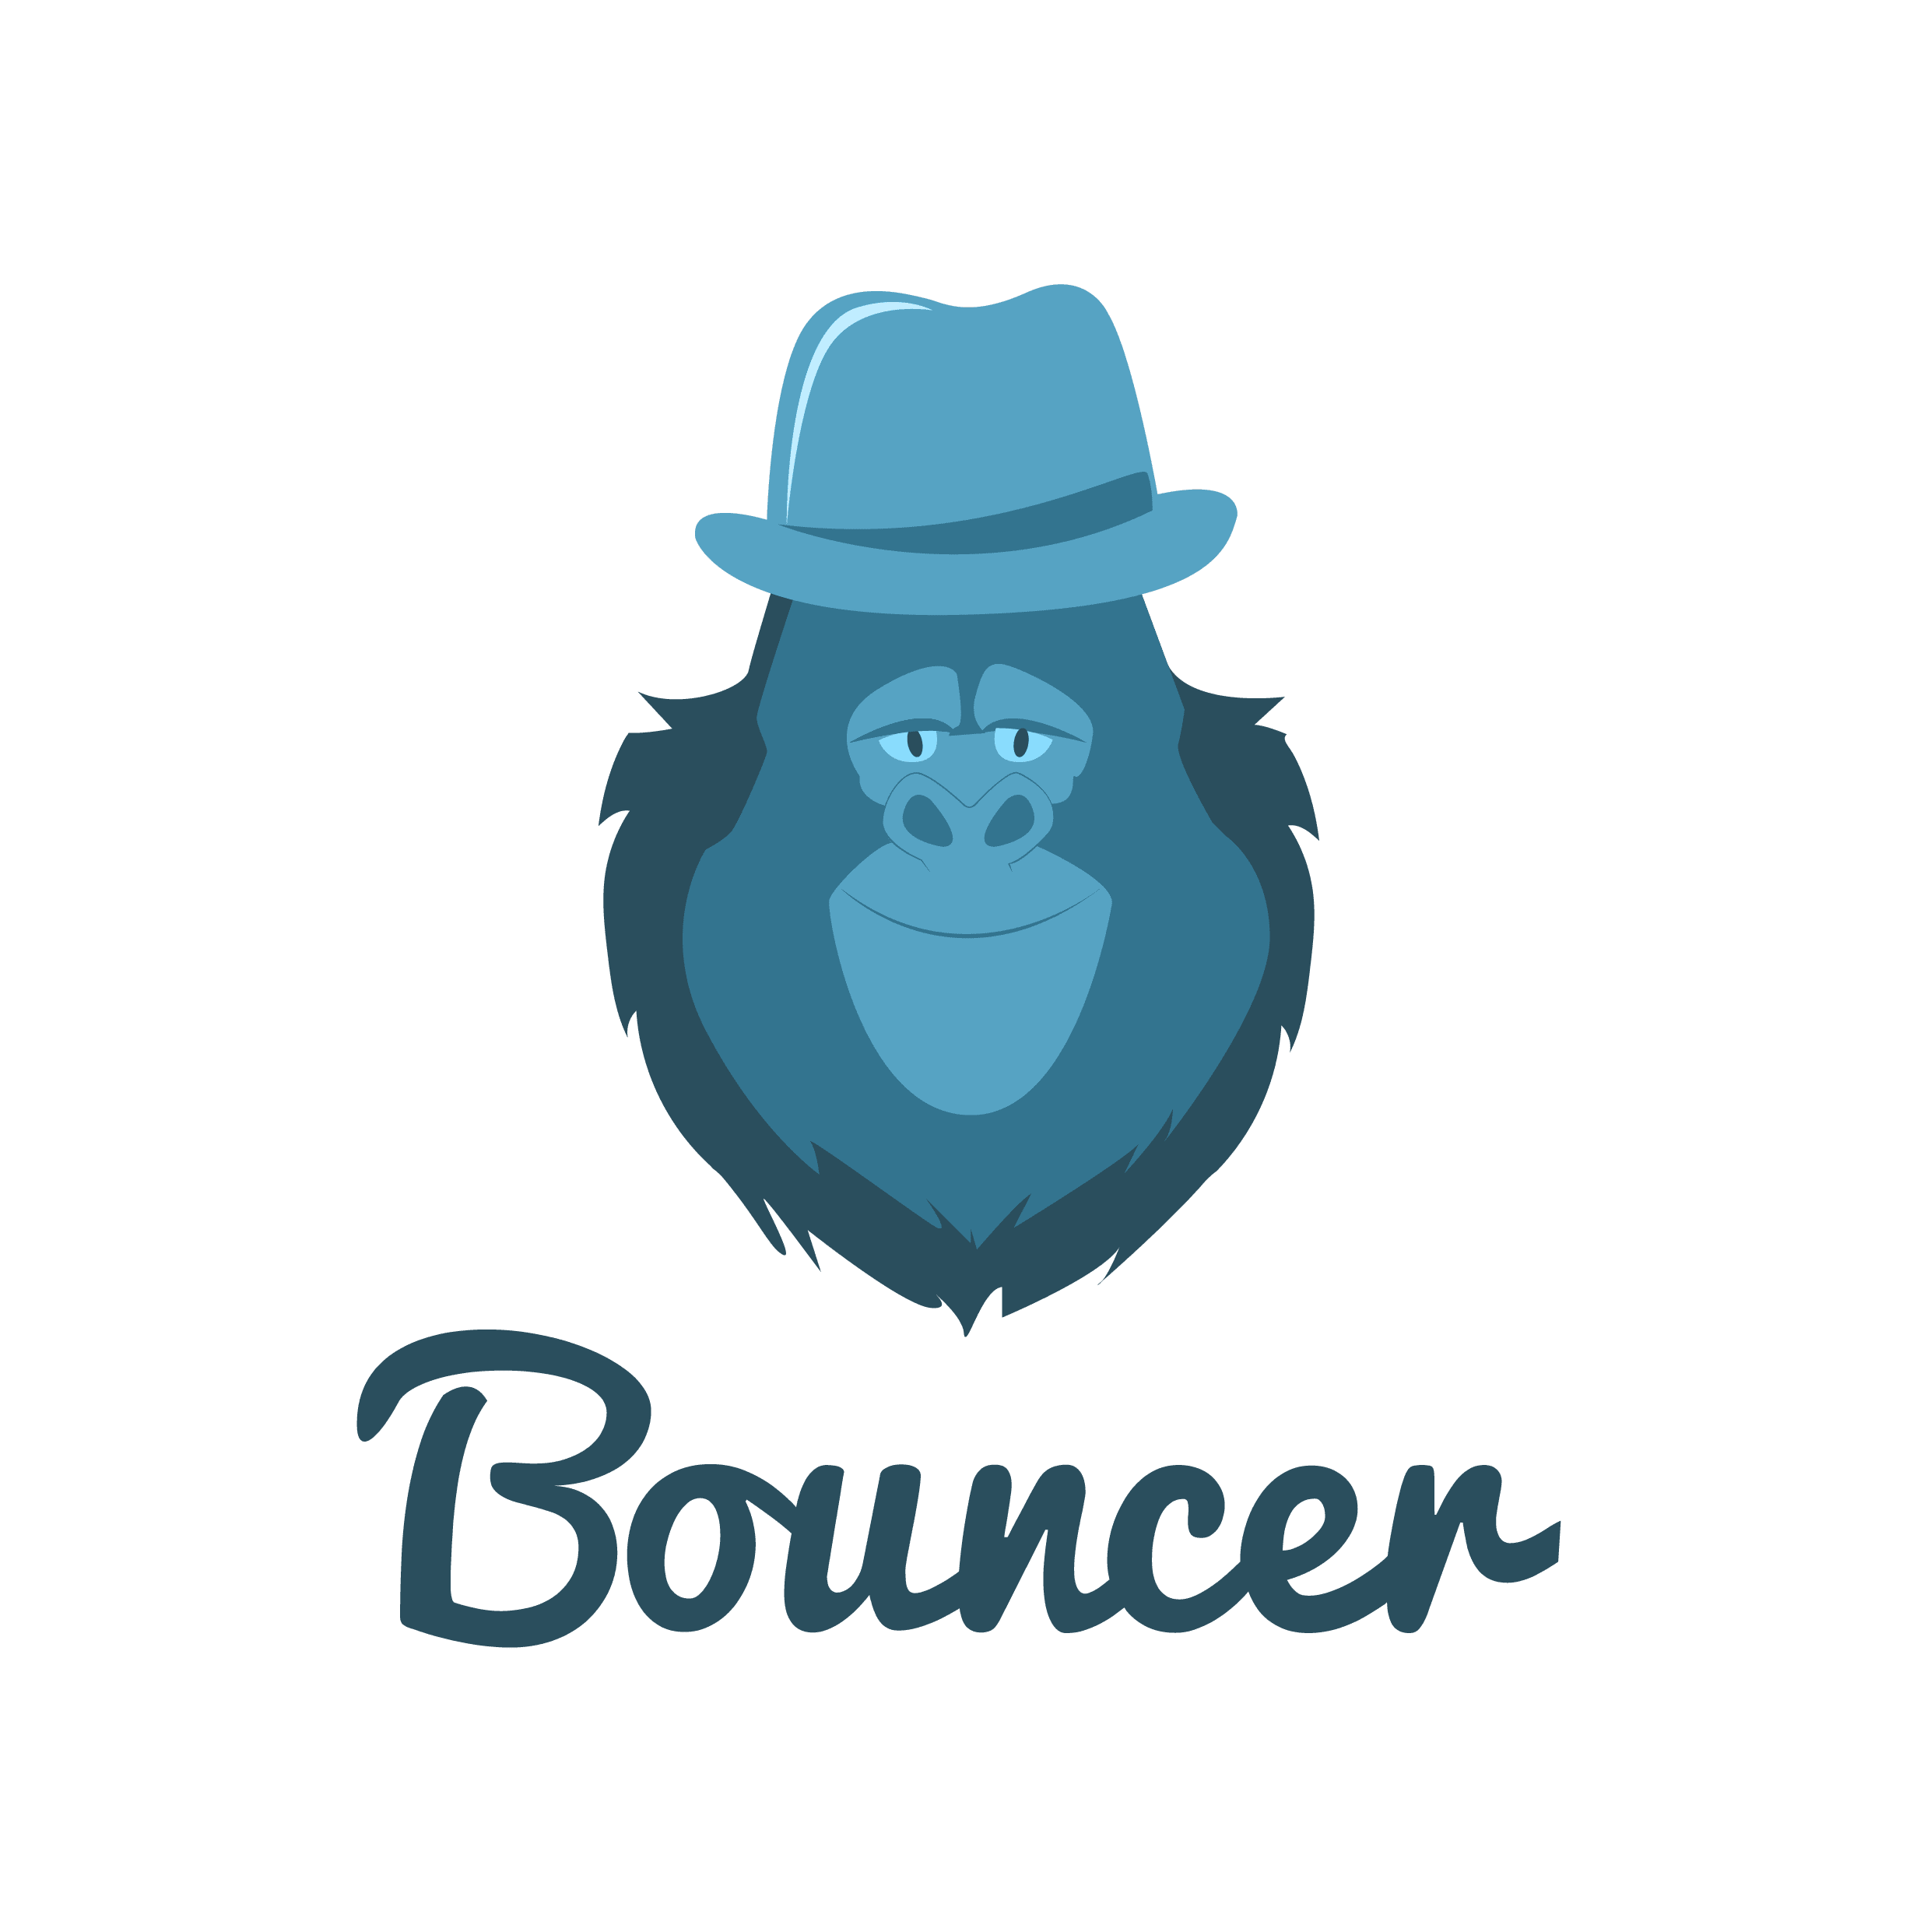 Keep your bounce rate low and open rates high with Bouncer!You might clean your email lists with our reliable email verification and list cleaning tool in 3 simple steps. Our superb user-friendly email verification app helps you enhance communication and reach out to a real person with ease and promptness.Bouncer protects your sender's reputation, decreases bounce rate and improves your deliverability, by not allowing a single undeliverable, risky or unknown email address to sneak into your email list. Verify your emails with the most advanced checker on the market!